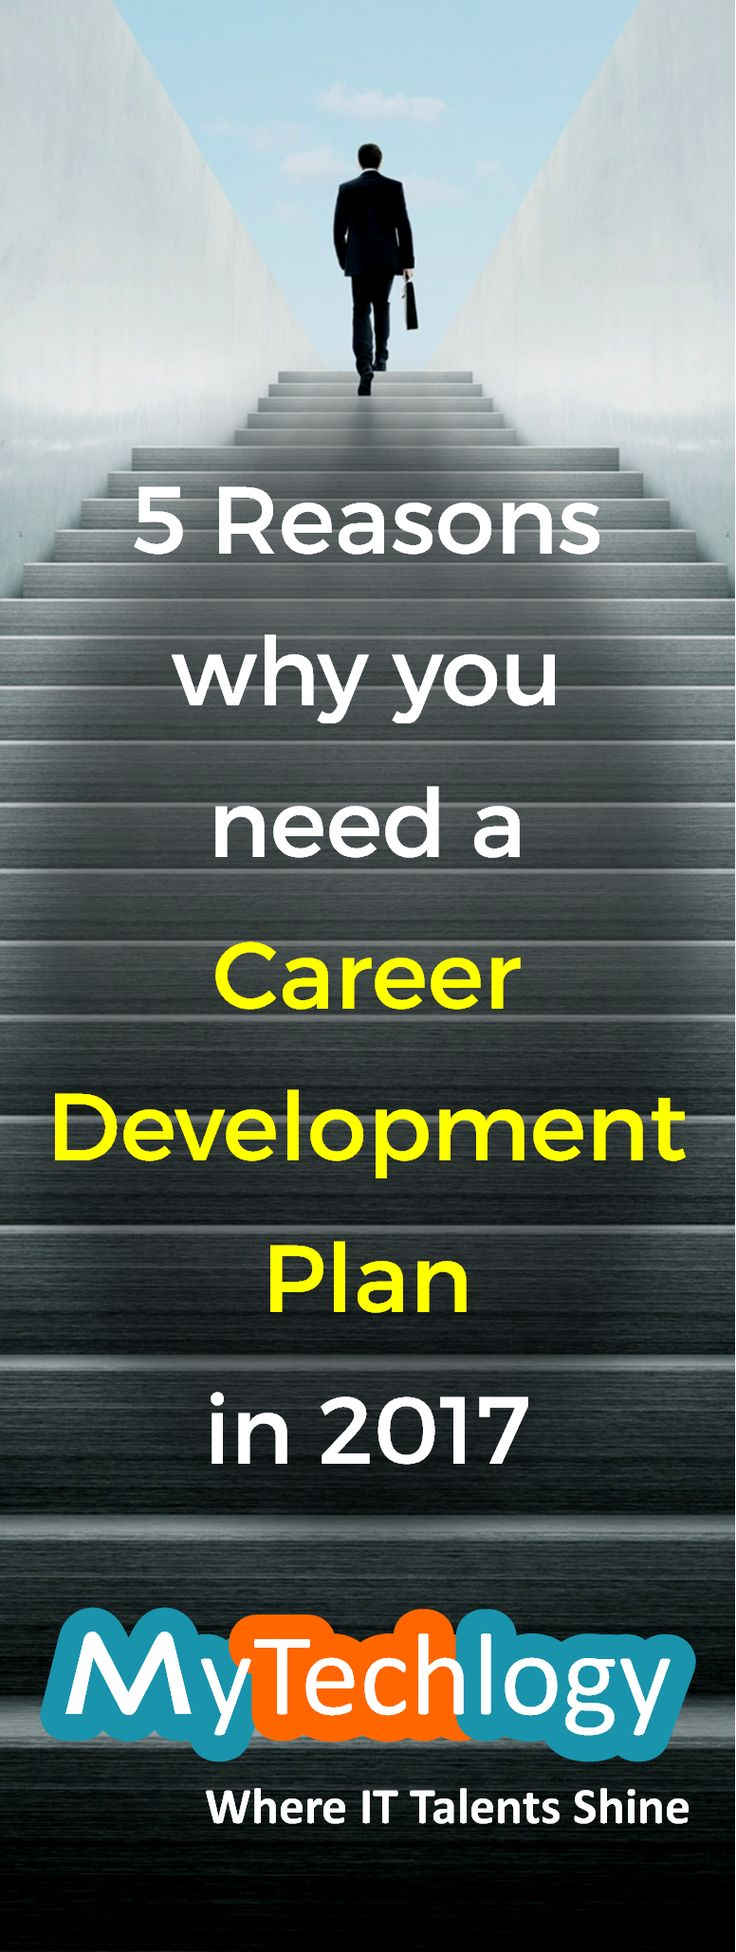 Successful careers are the rewards of your talent, hard work, learnings and a plan carefully managed and put to work. They don't happen by accident. Here are 5 reasons for you to create a career development plan in 2017. #career #careerdevelopment